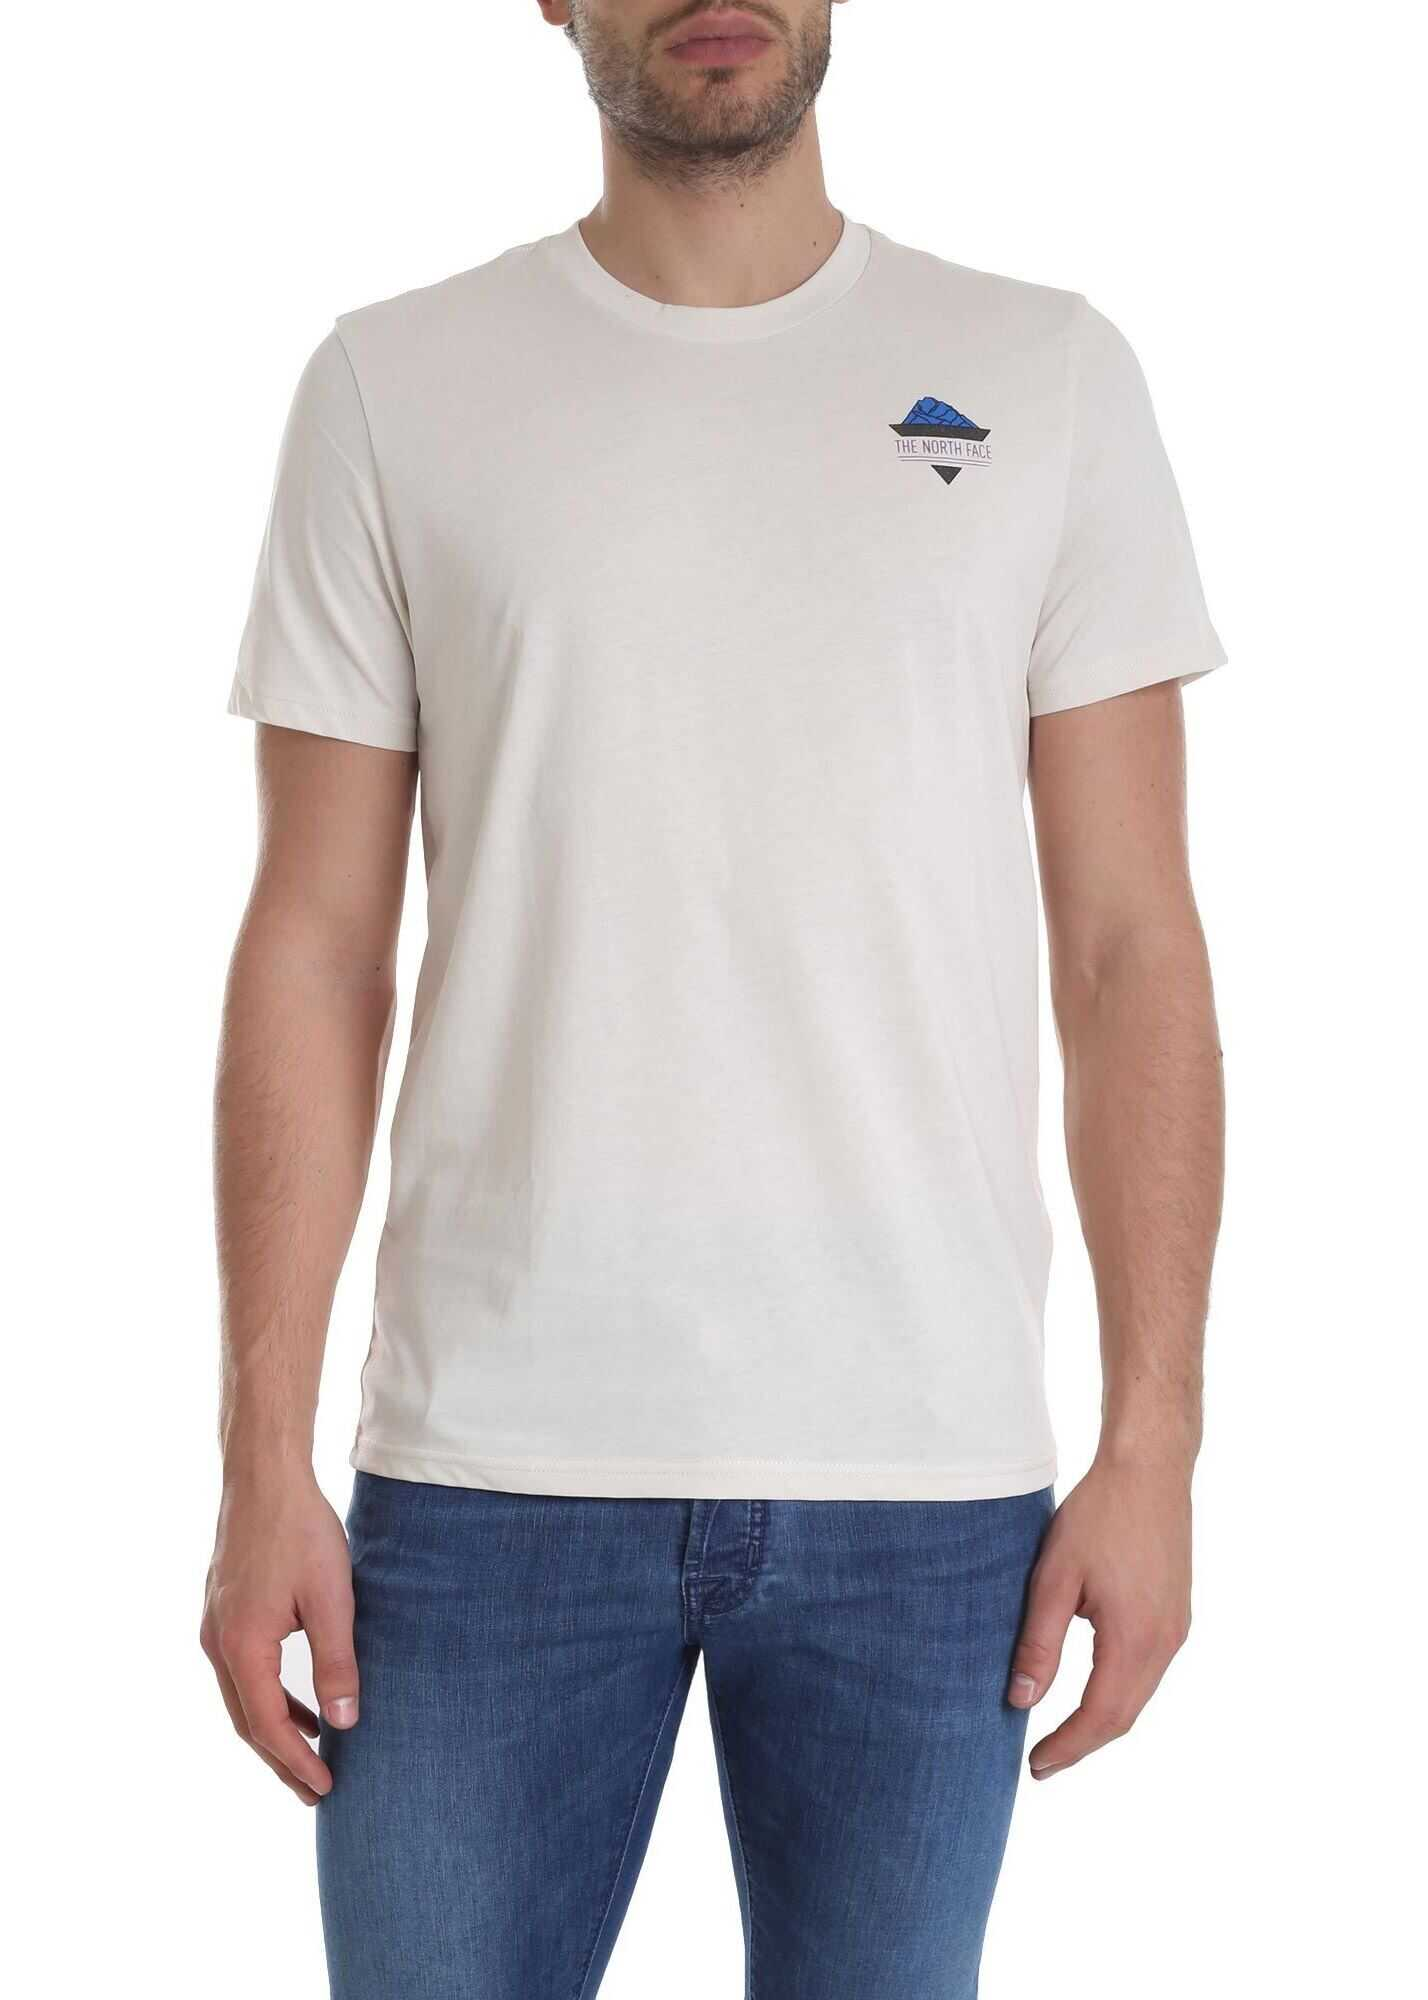 T-Shirt With Logo In Cream-Color